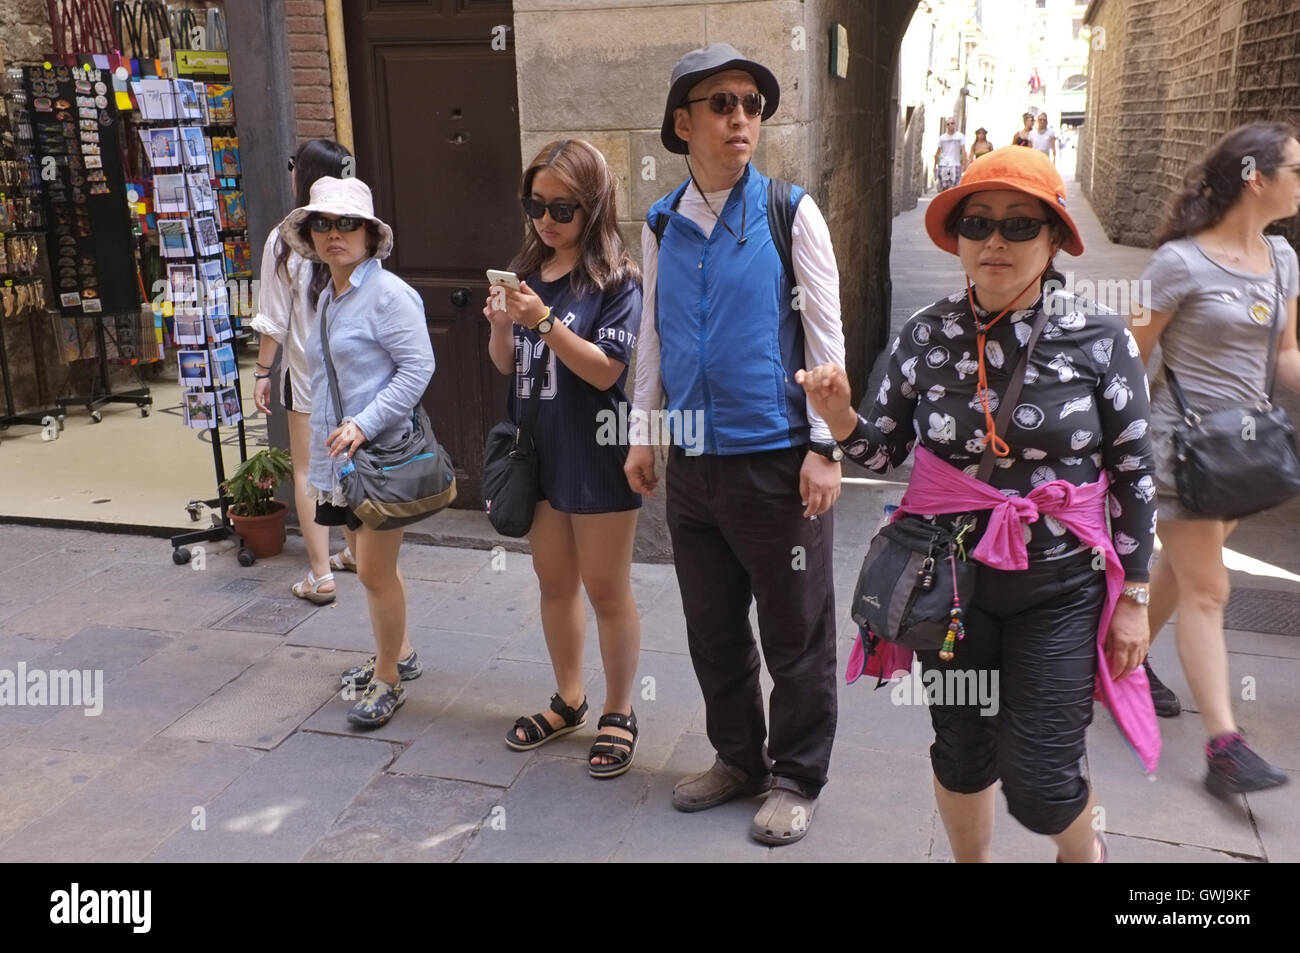 Japanese tourists in Barcelona's medieval quarter - Stock Image